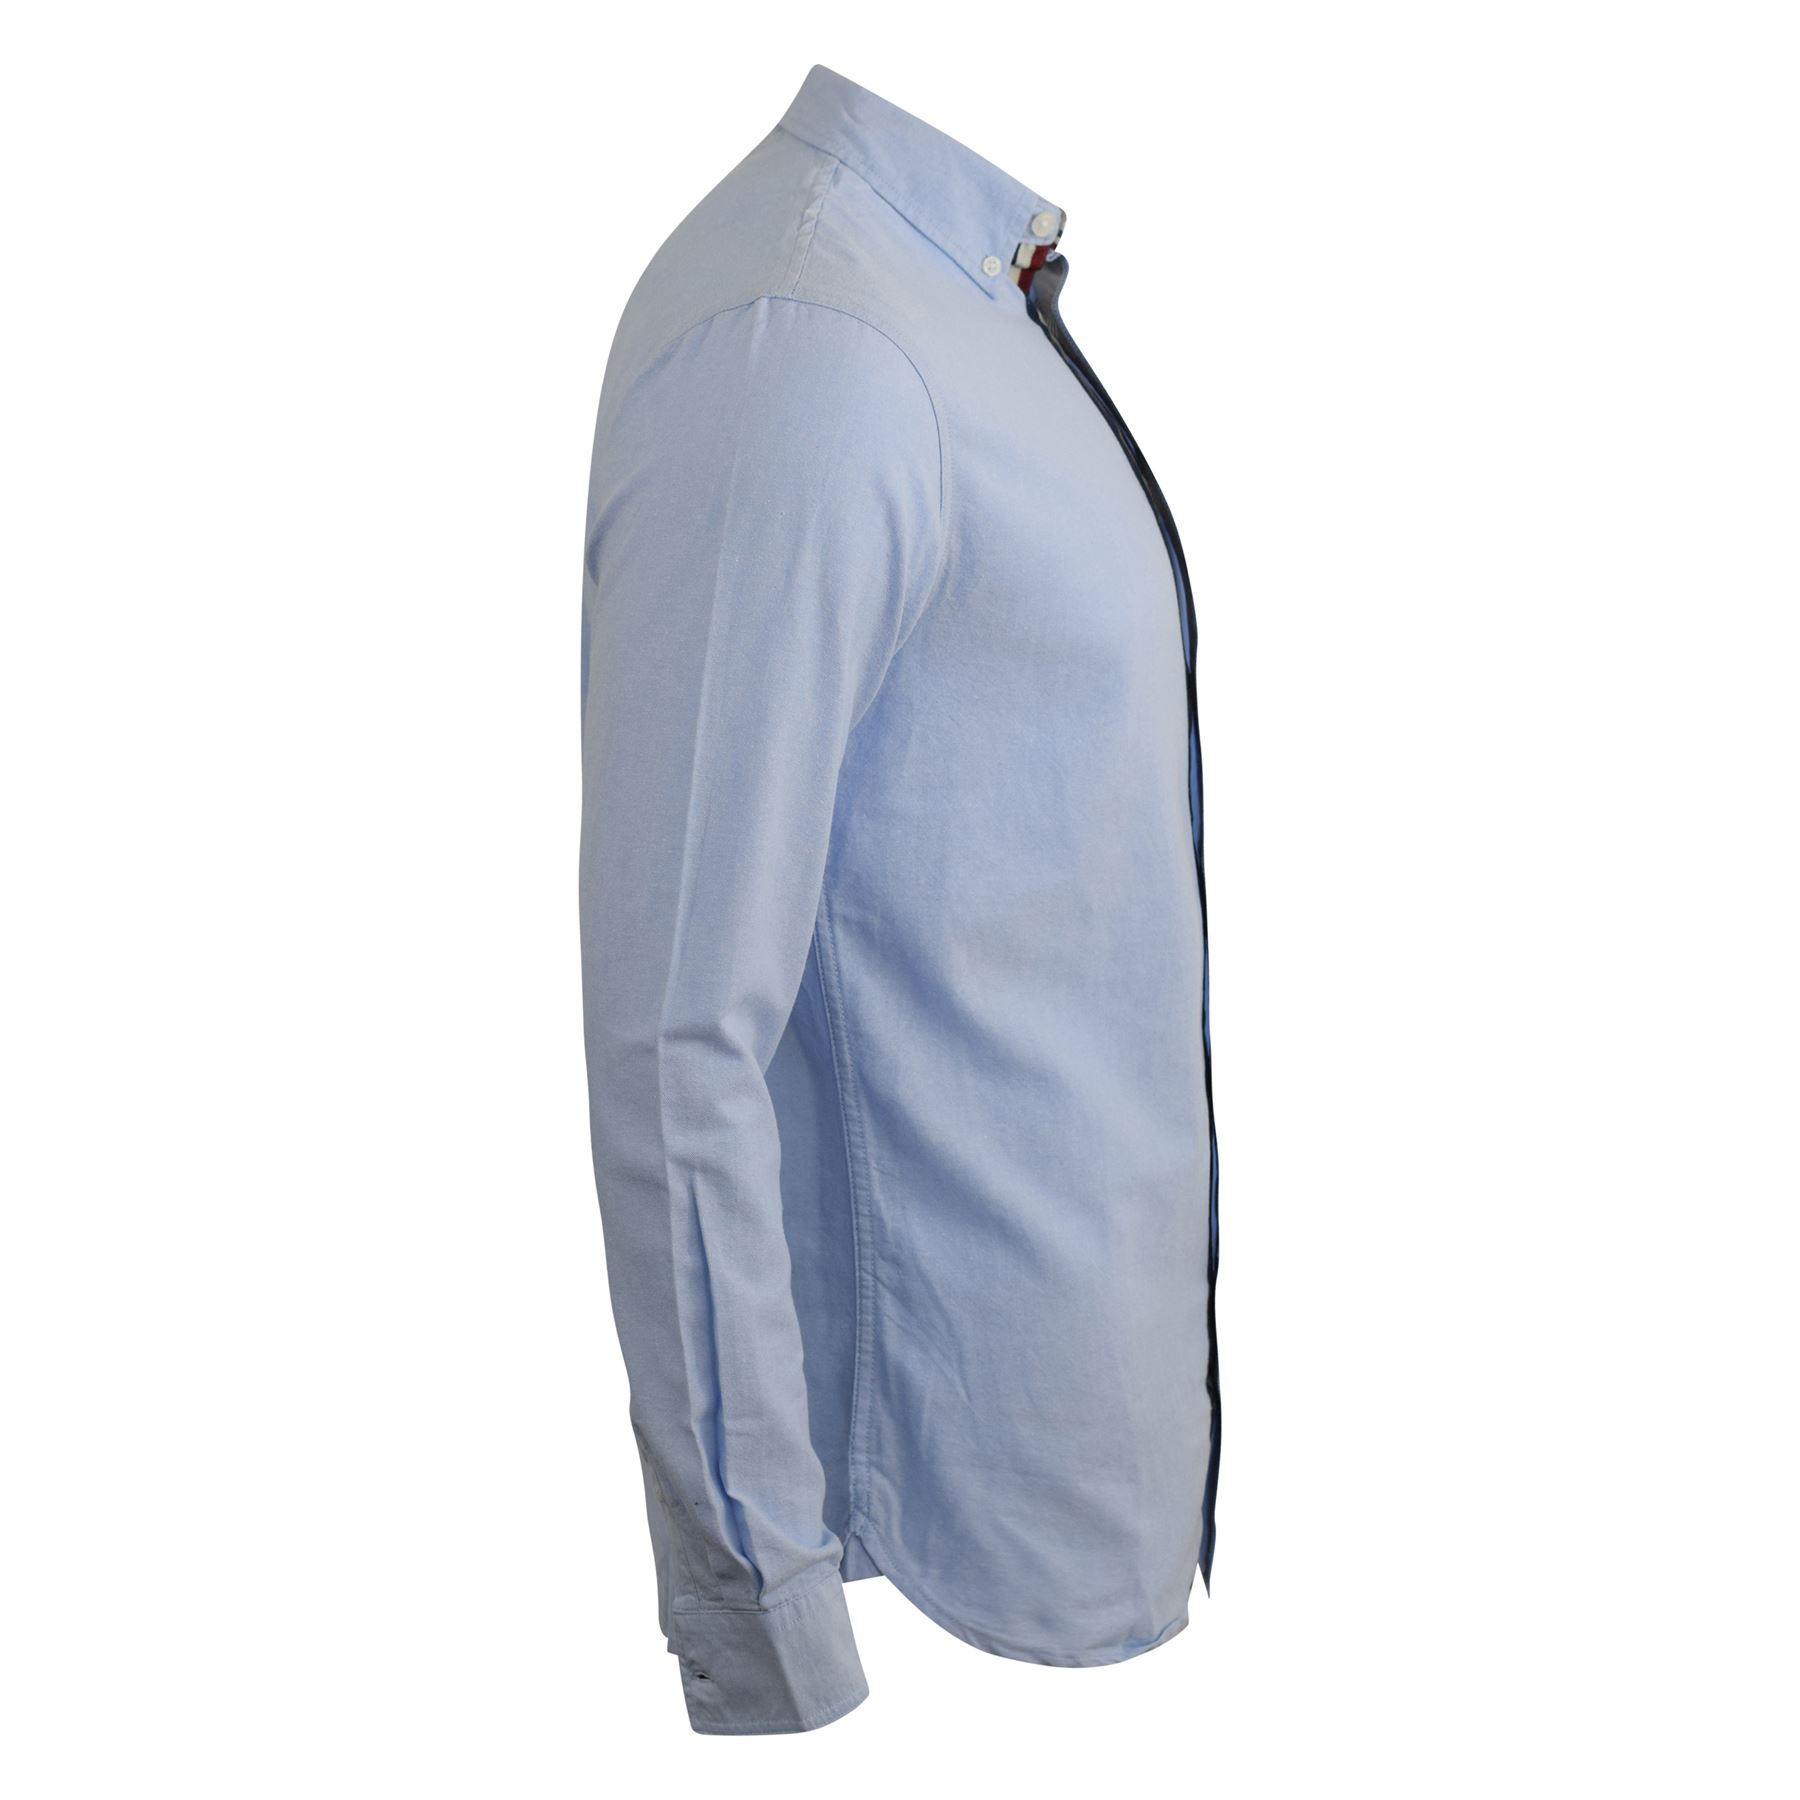 Mens-Oxford-Shirt-Kangol-Long-Sleeve-Lanundered-Casual-Shirt thumbnail 6